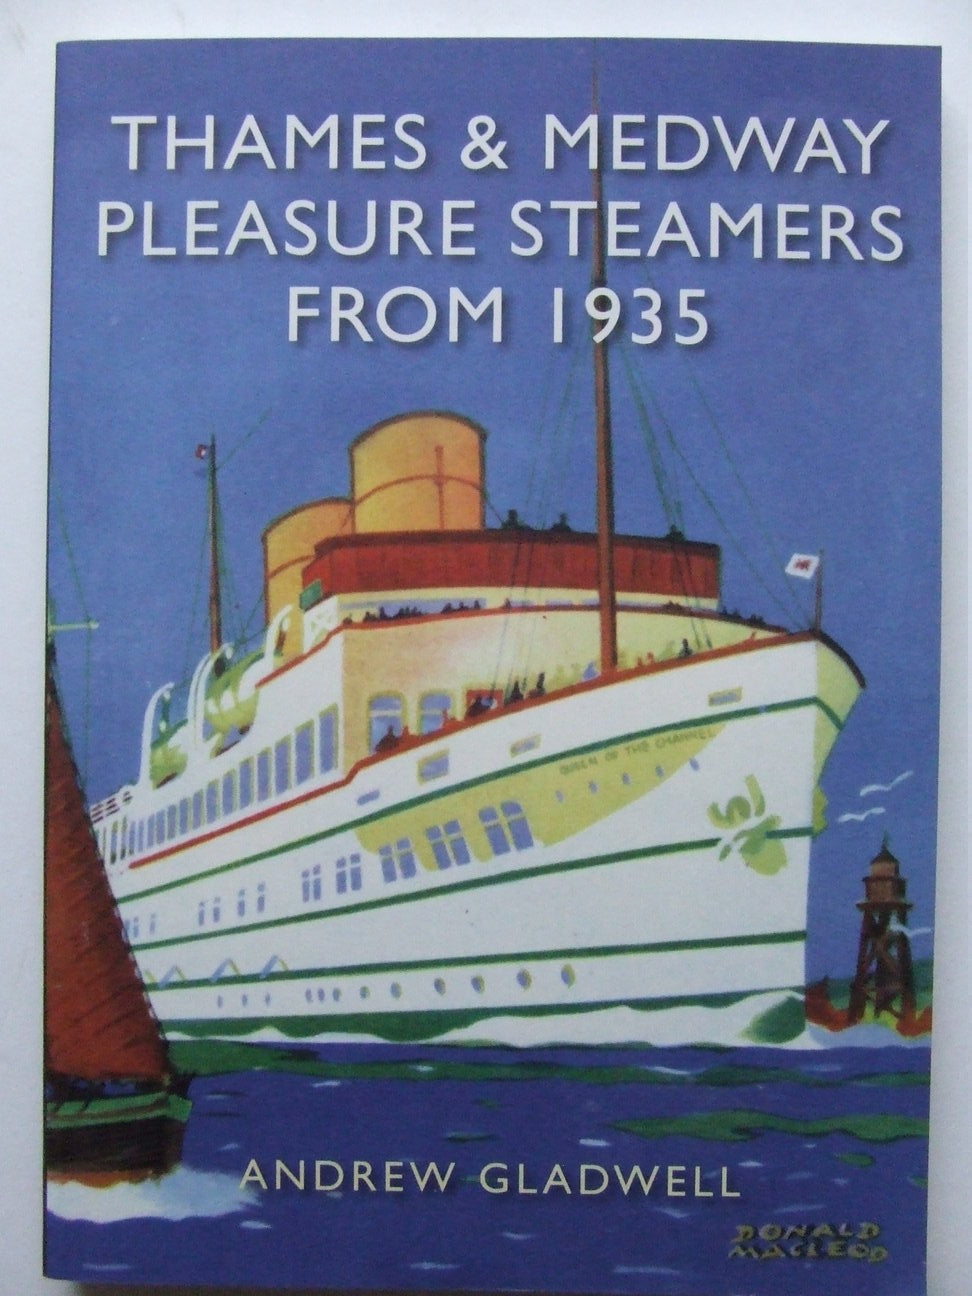 Thames & Medway Pleasure Steamers from 1935